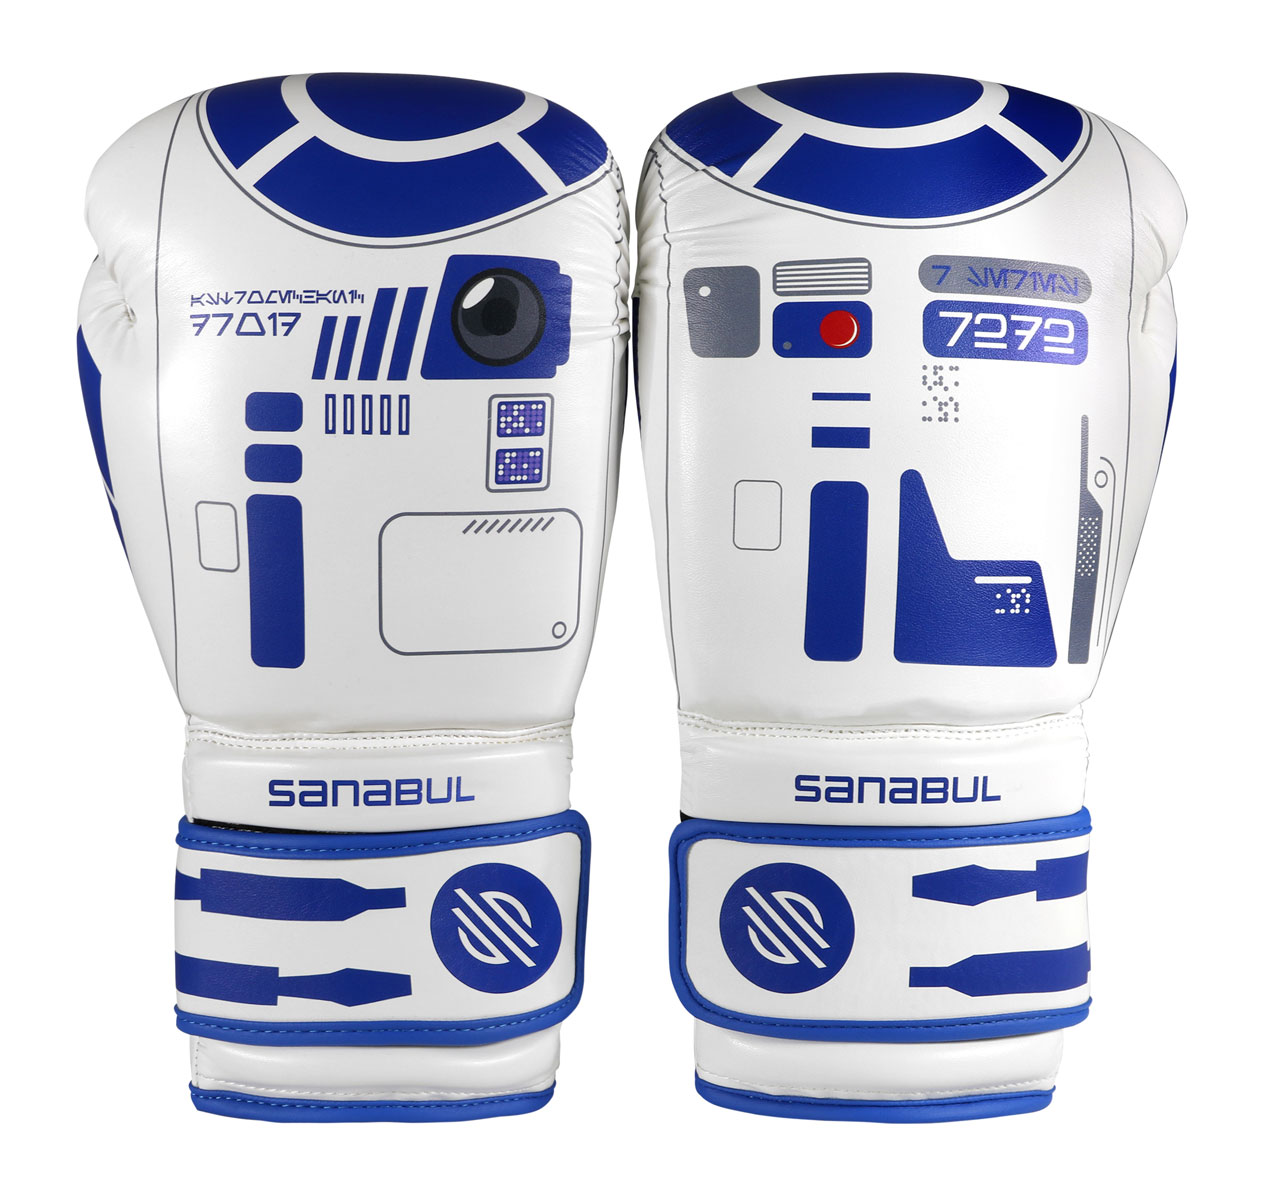 Star Wars R2D2 inspired boxing gloves from Sanabul